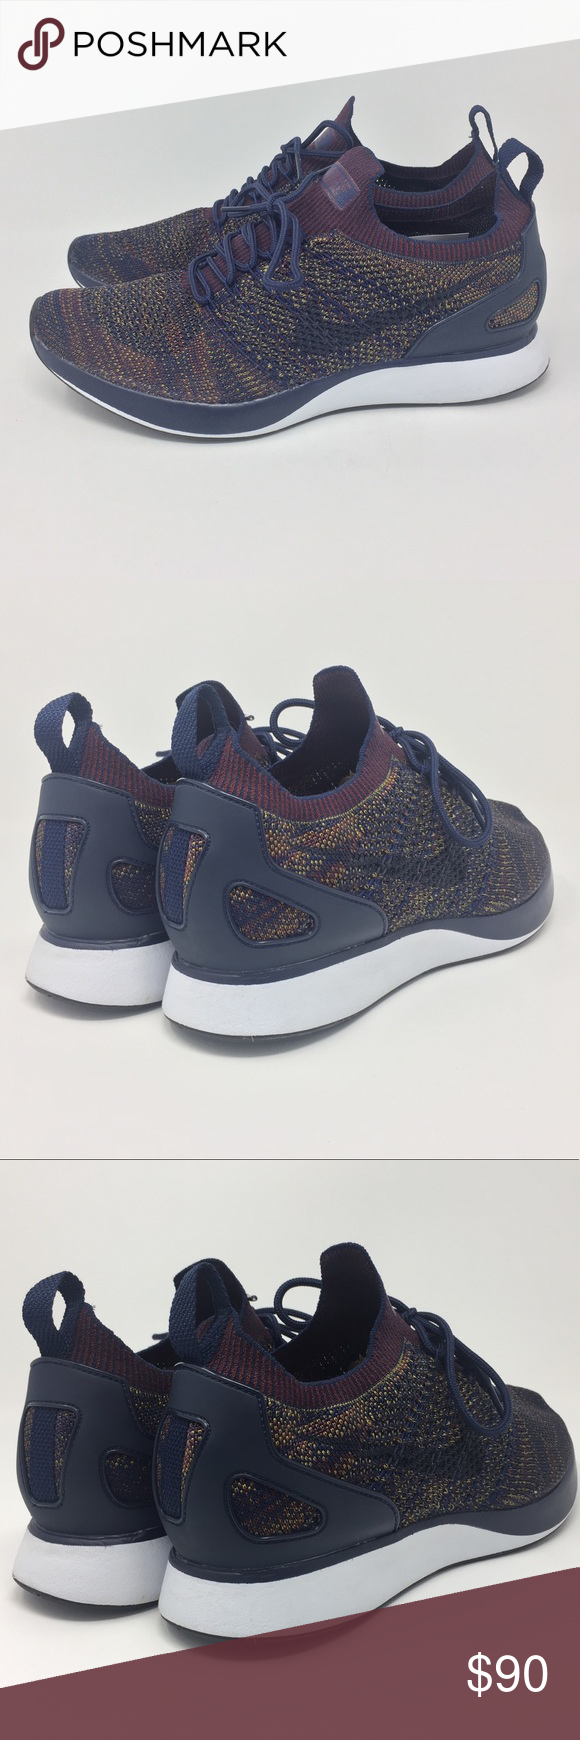 3d44f434e4e5 Nike Air Zoom Mariah Flyknit Racer Brand new. Nike Air Zoom Mariah Flyknit  Men s size 10.5. College Navy Bordeaux Desert Moss in color. Snug